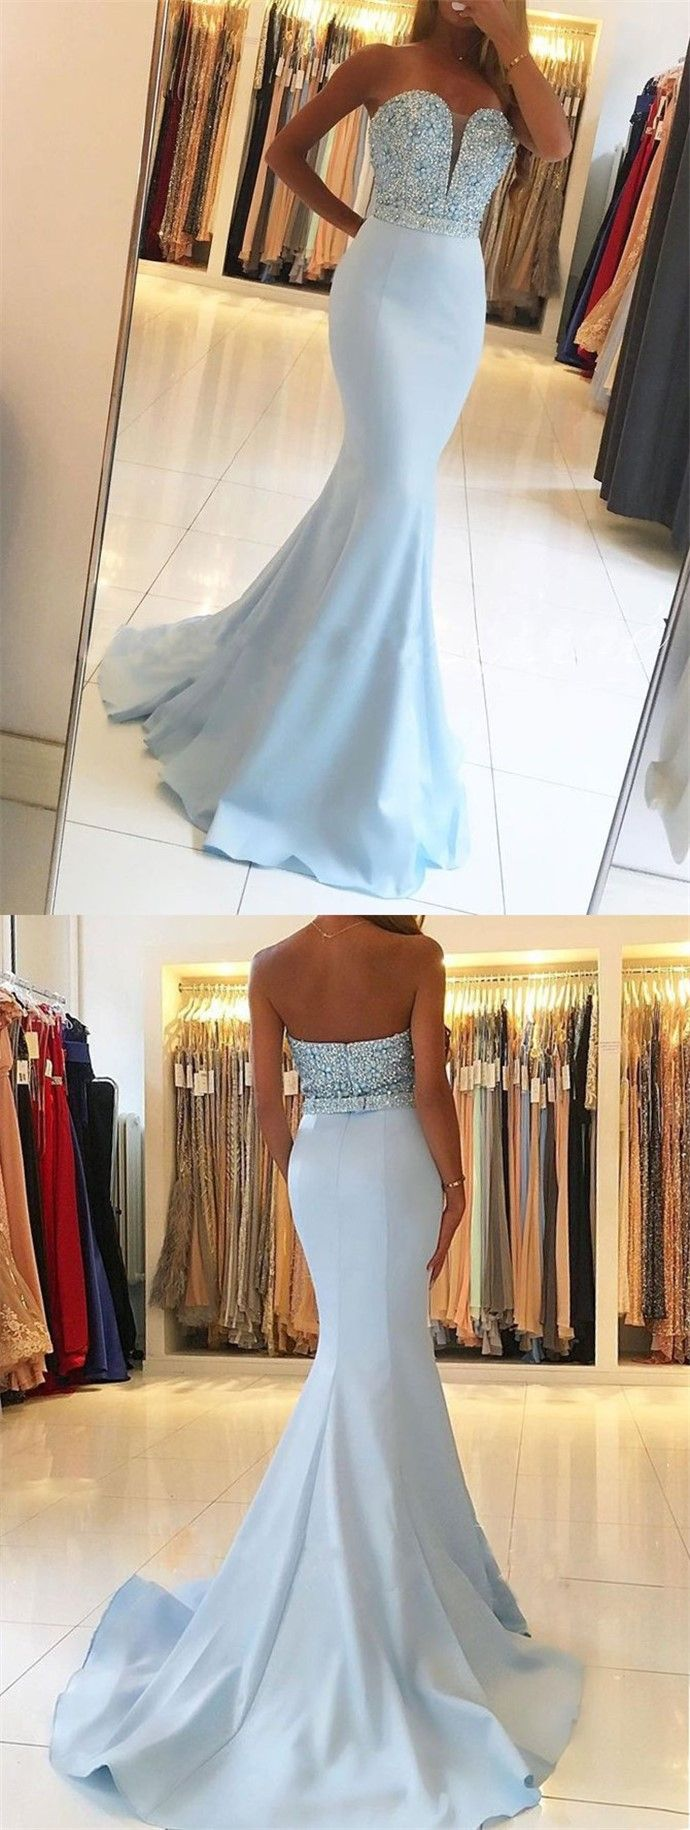 mermaid prom party dresses, baby blue beaded evening gowns, sparkle fashion formal gown .